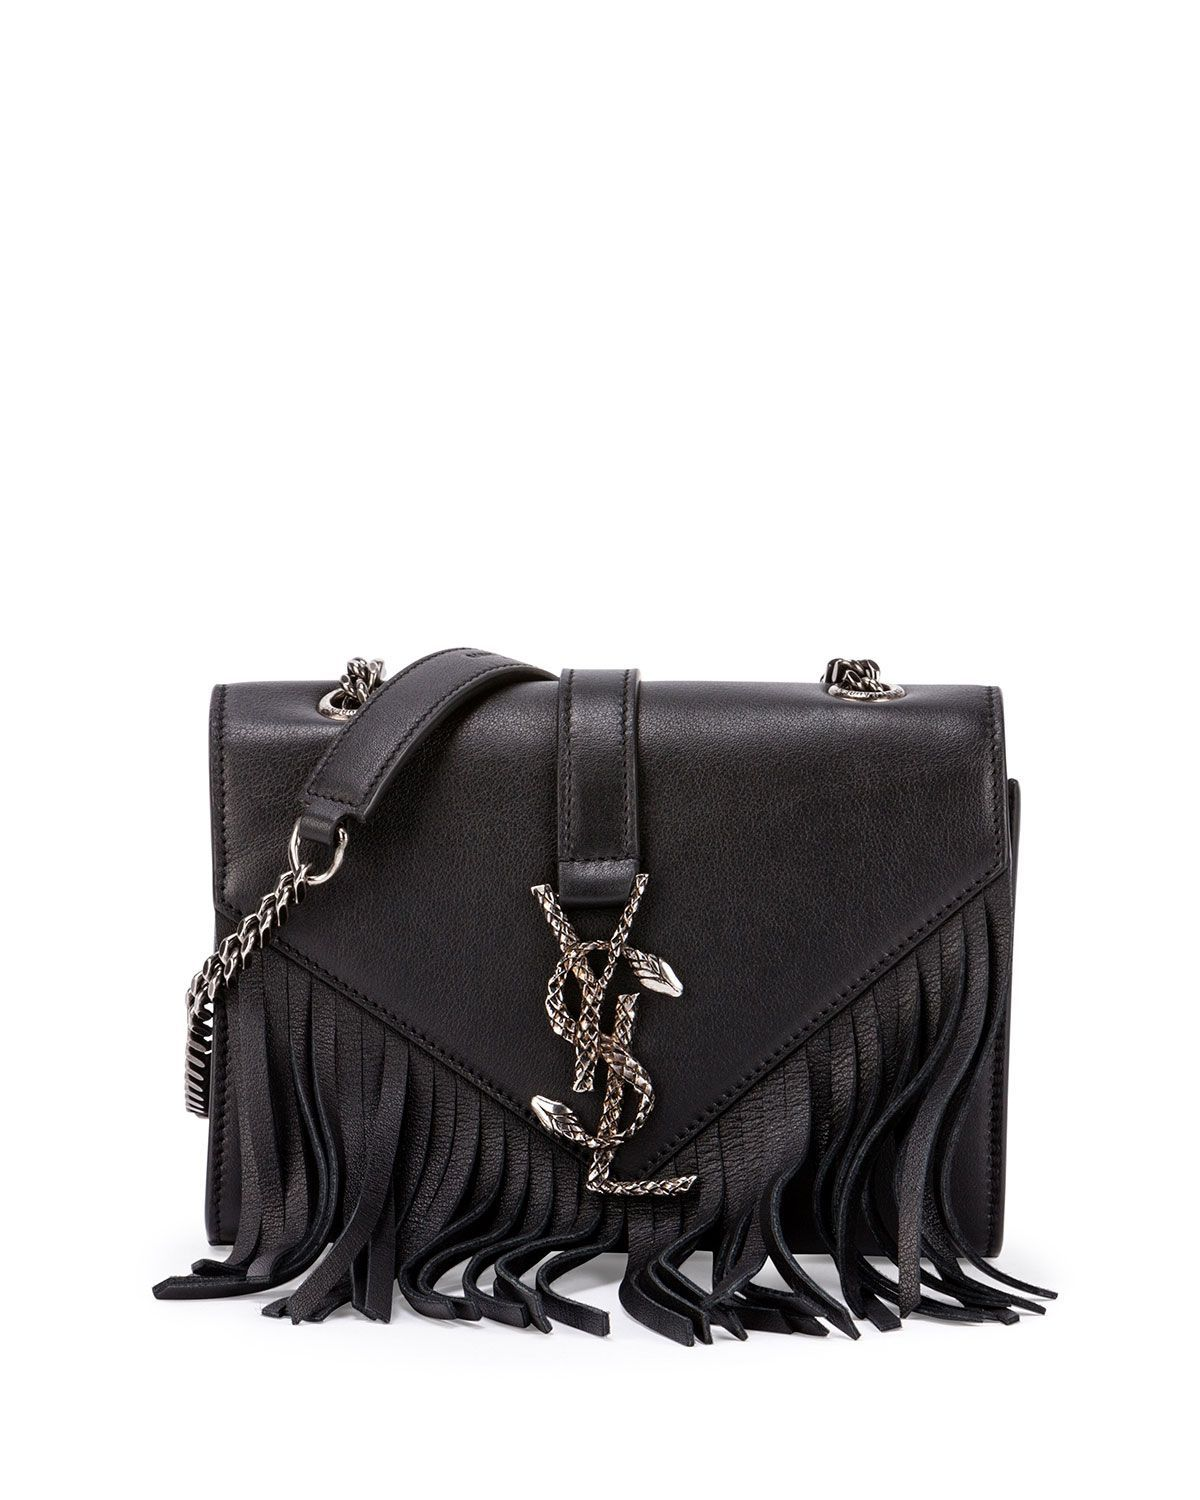 VIDA Leather Statement Clutch - In focus by kostistlac by VIDA Q1k2jn